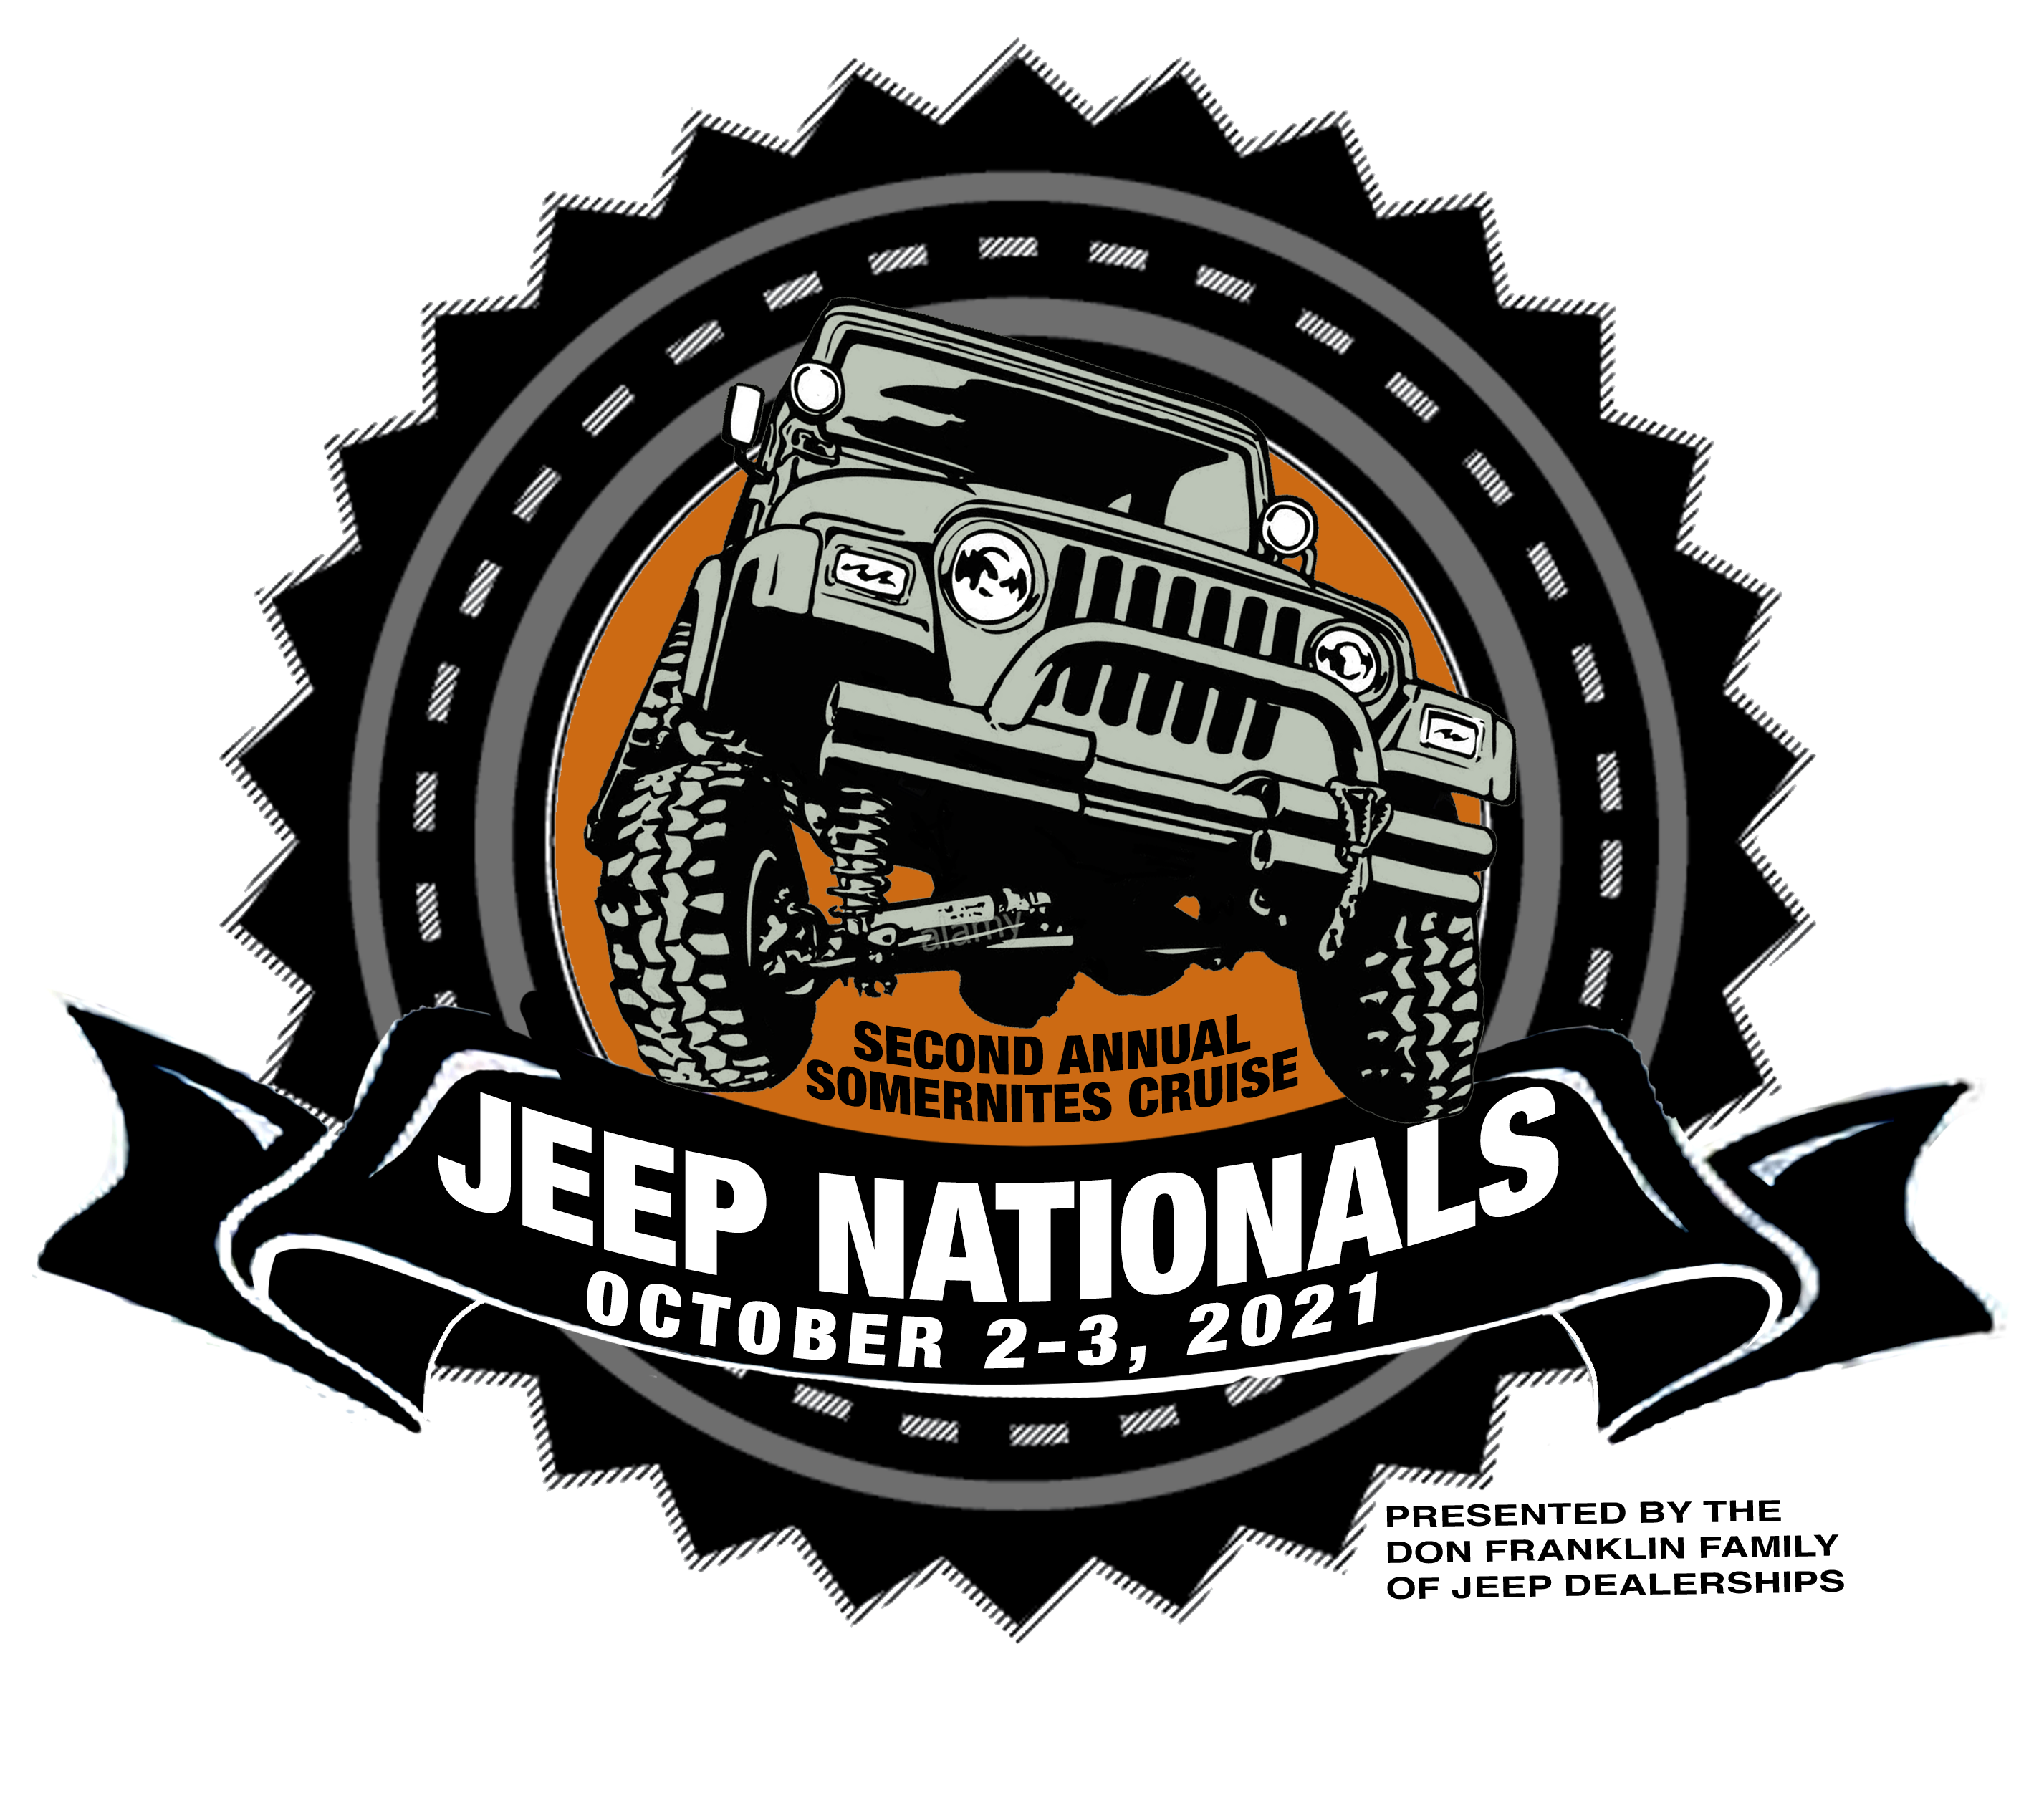 jeepnationals2021logo